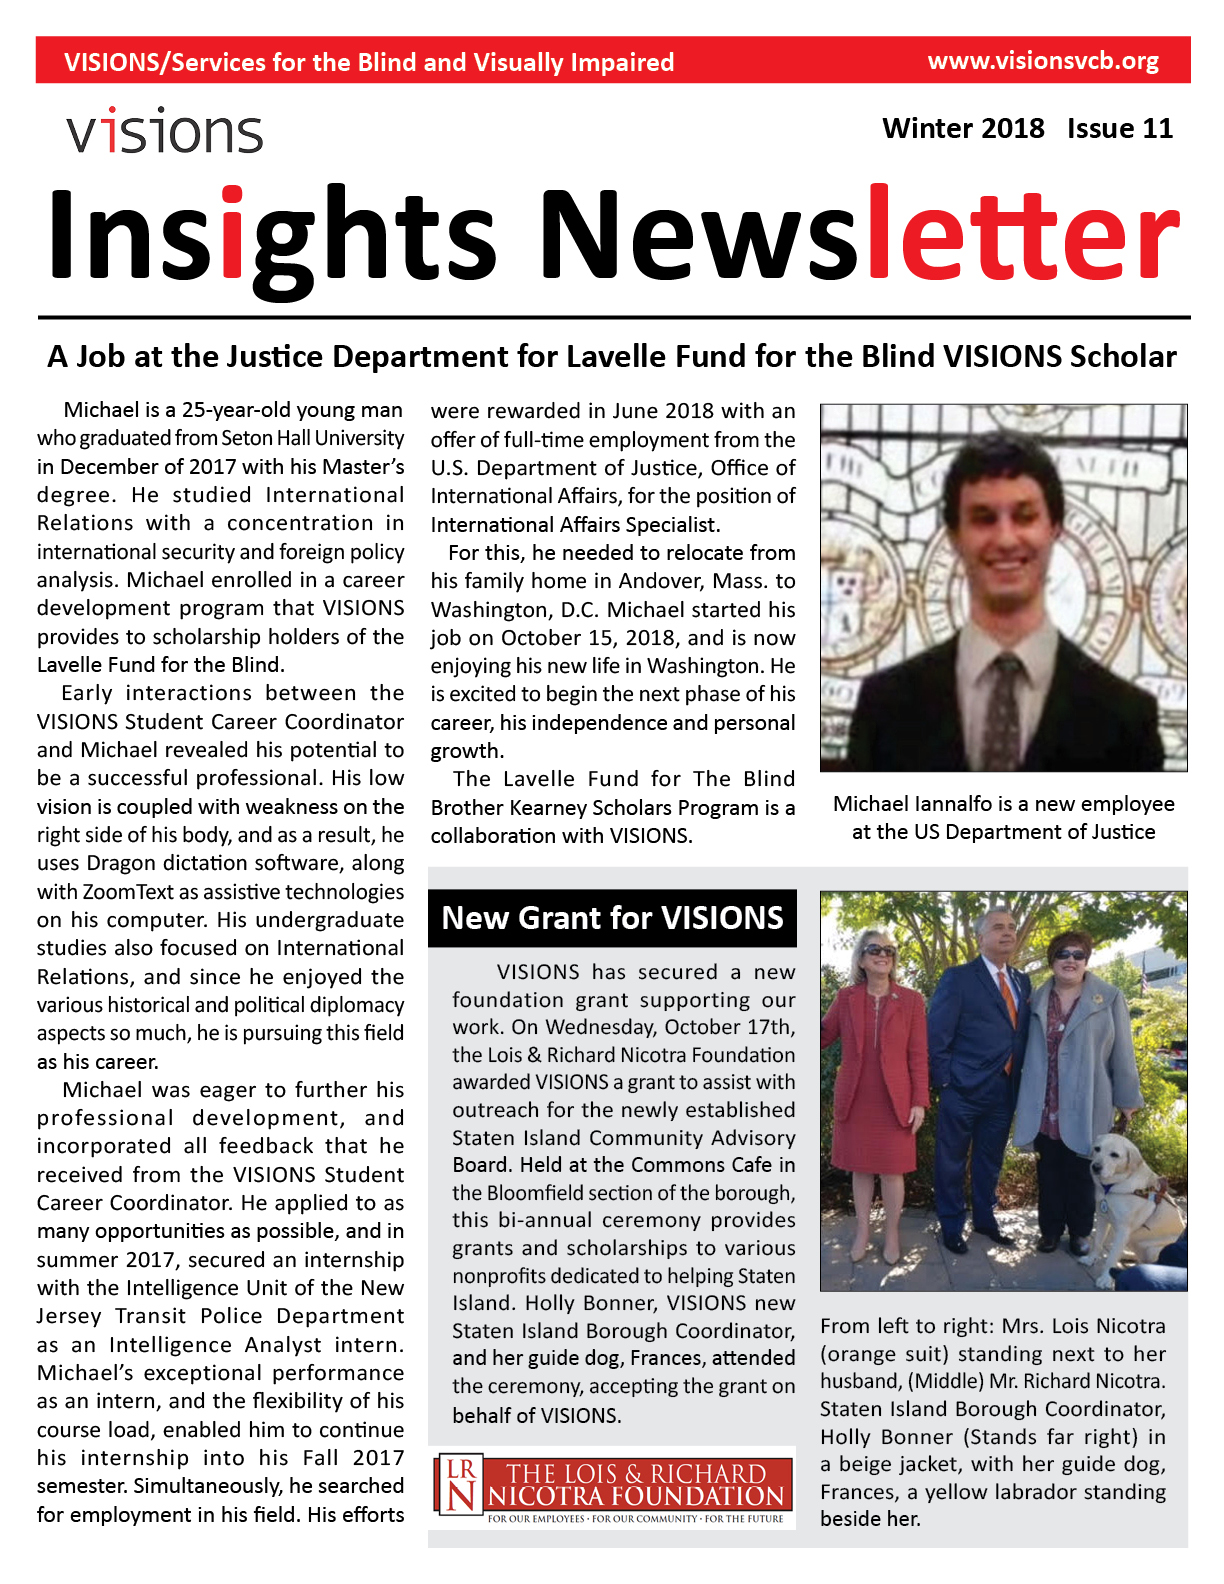 Graphic: VISIONS Insights newsletter, Winter 2018 issue cover. Double-tap or click to read this issue. This document will open as a PDF.